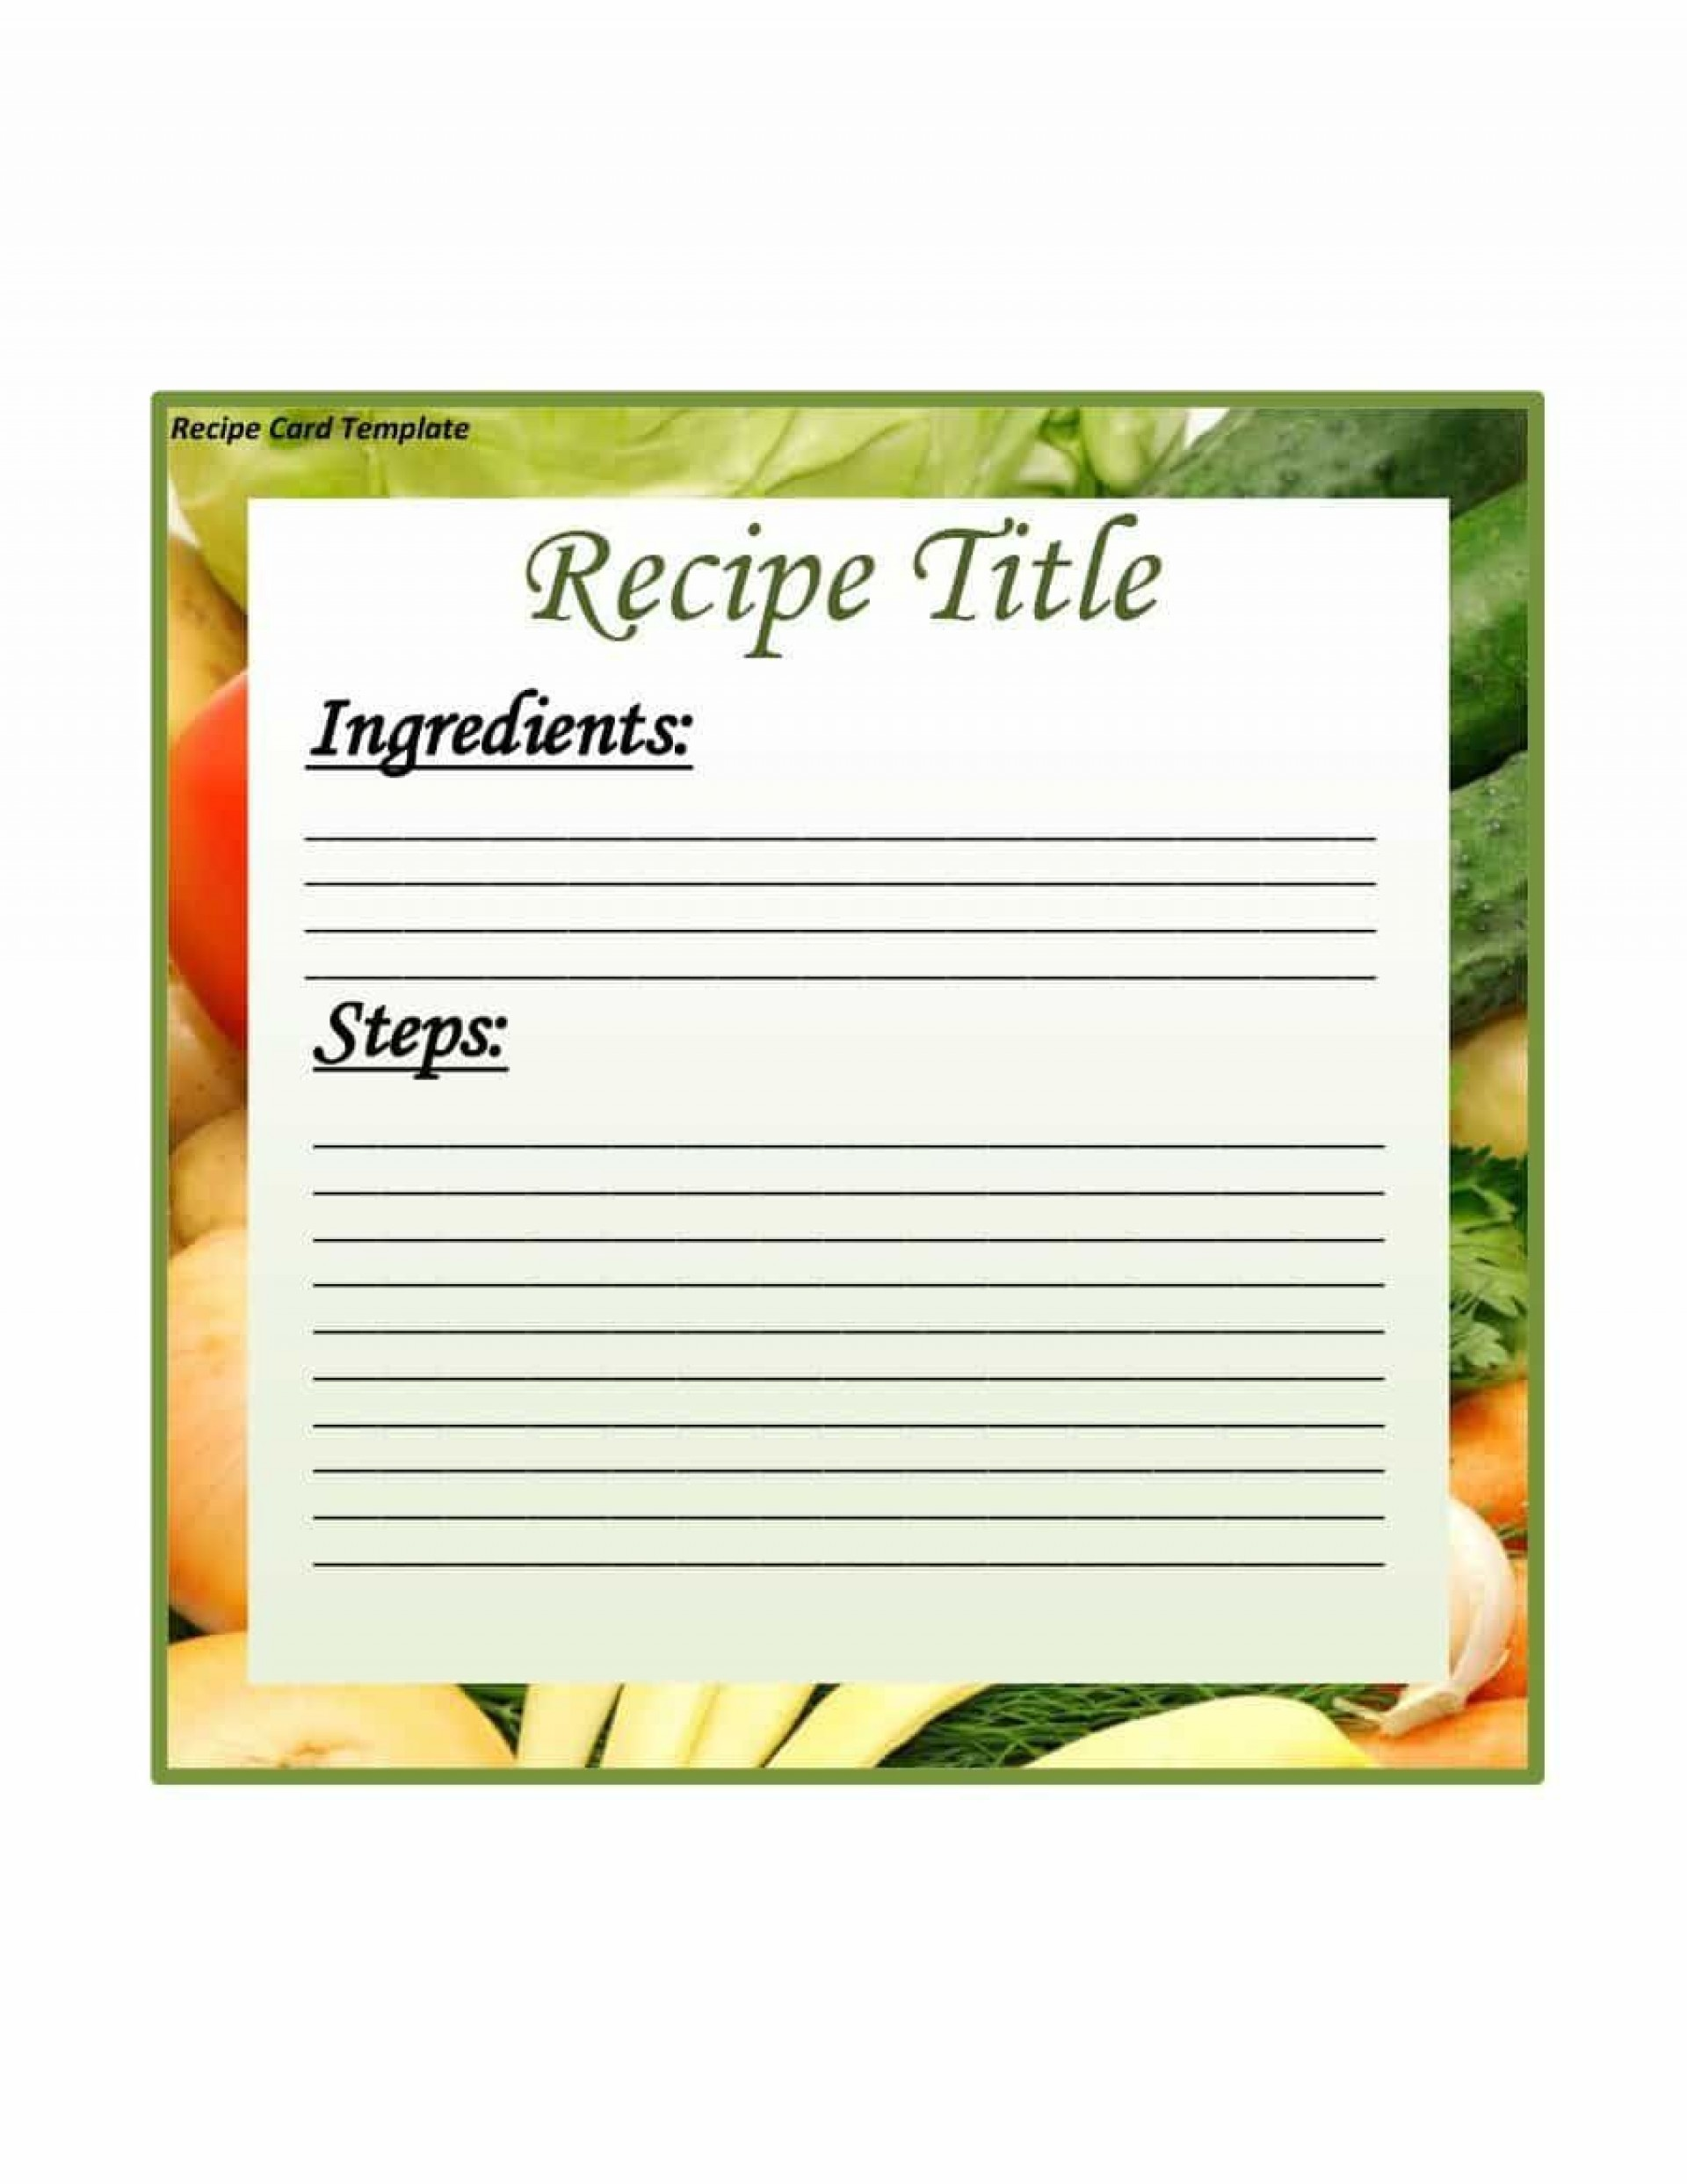 002 Breathtaking Fillable Recipe Card Template Highest Clarity  For Word Free1920